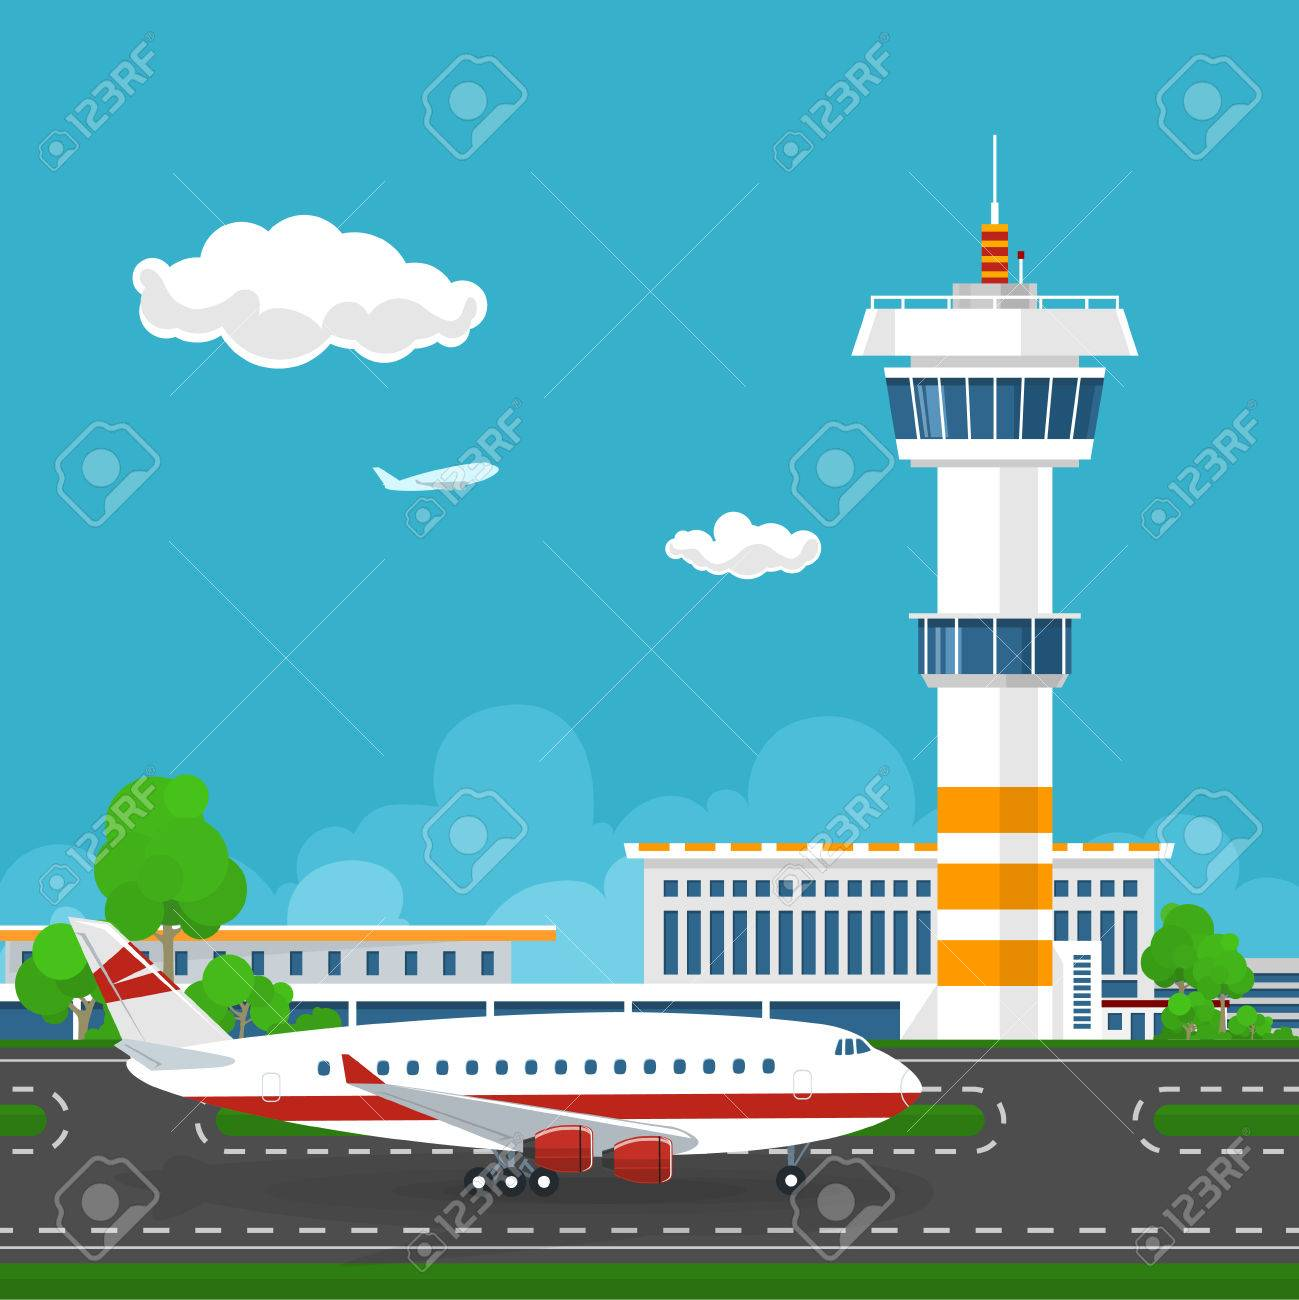 Airport Terminal, the Plane on the Runway at the Airport , Airport with Control Tower and Airplane ,Tourism Concept ,Vector Illustration - 57677003